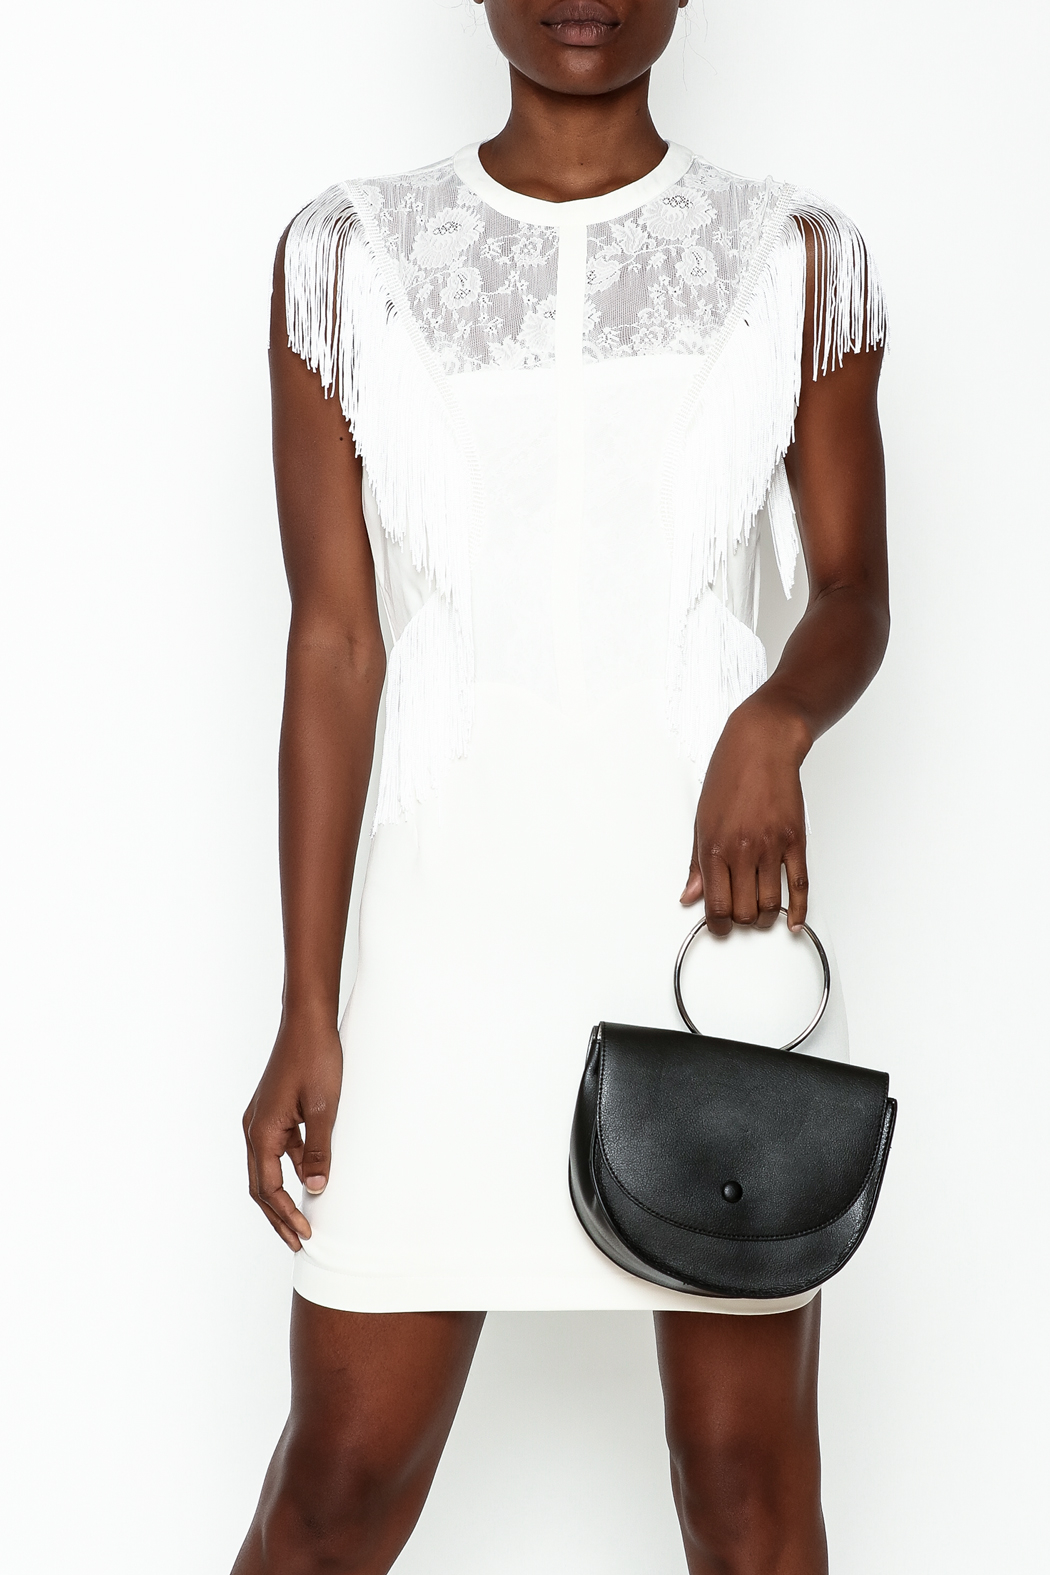 LIFTED Boutique Fringe And Lace Dress - Main Image